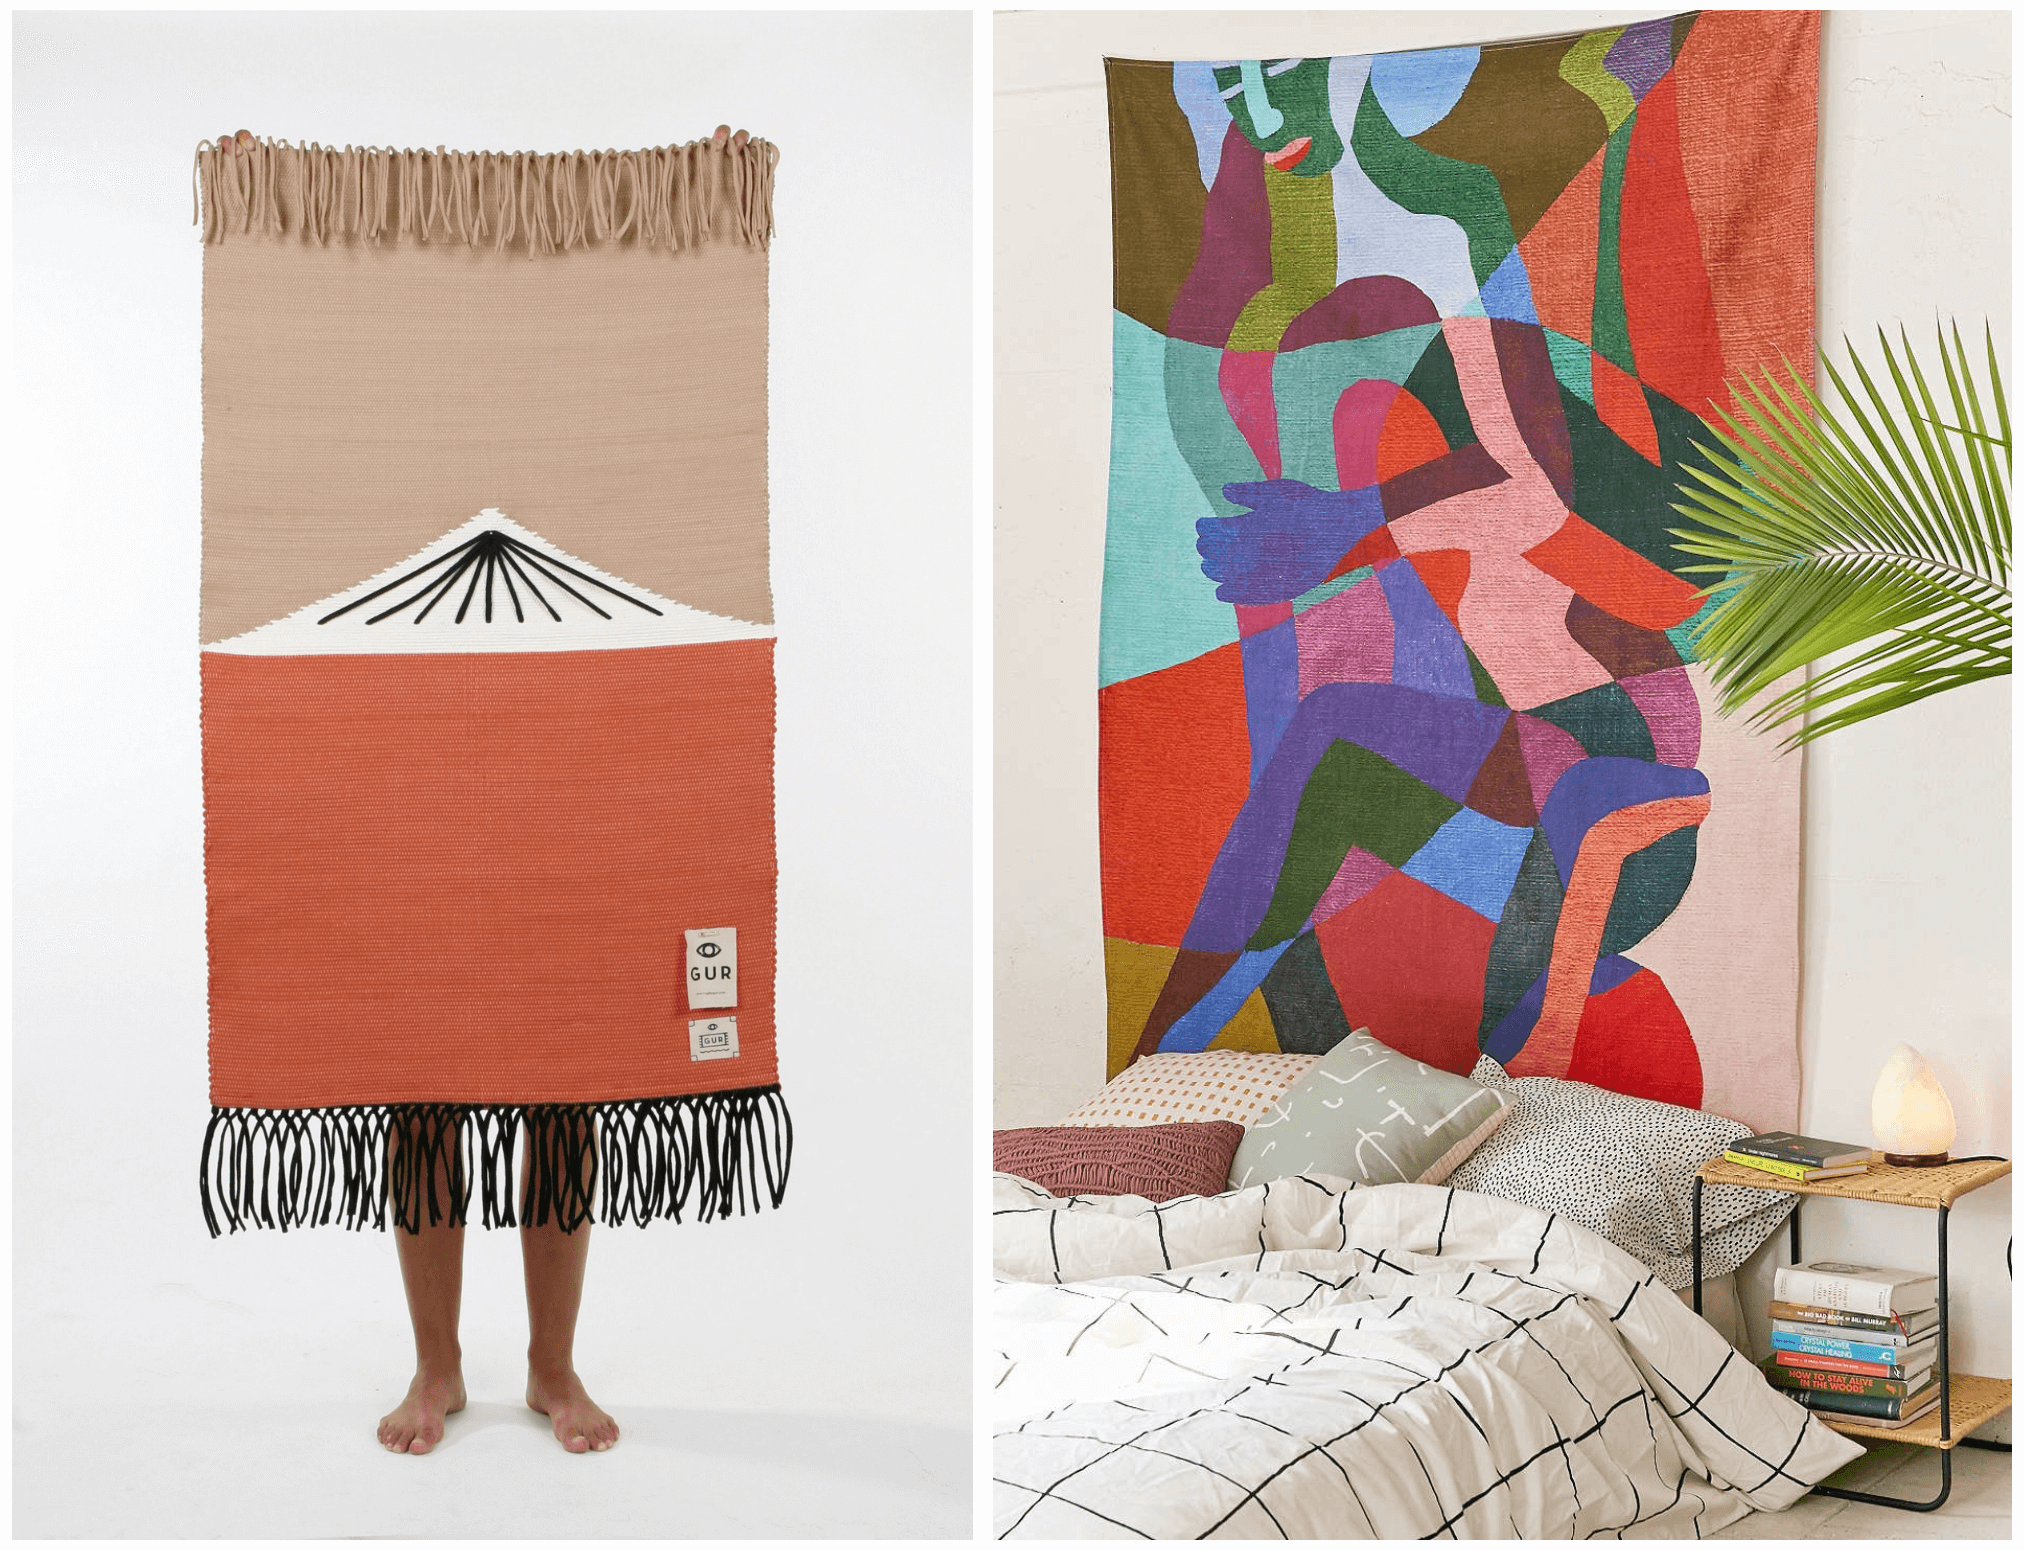 Rug by Gur  &  Urban Outfitters